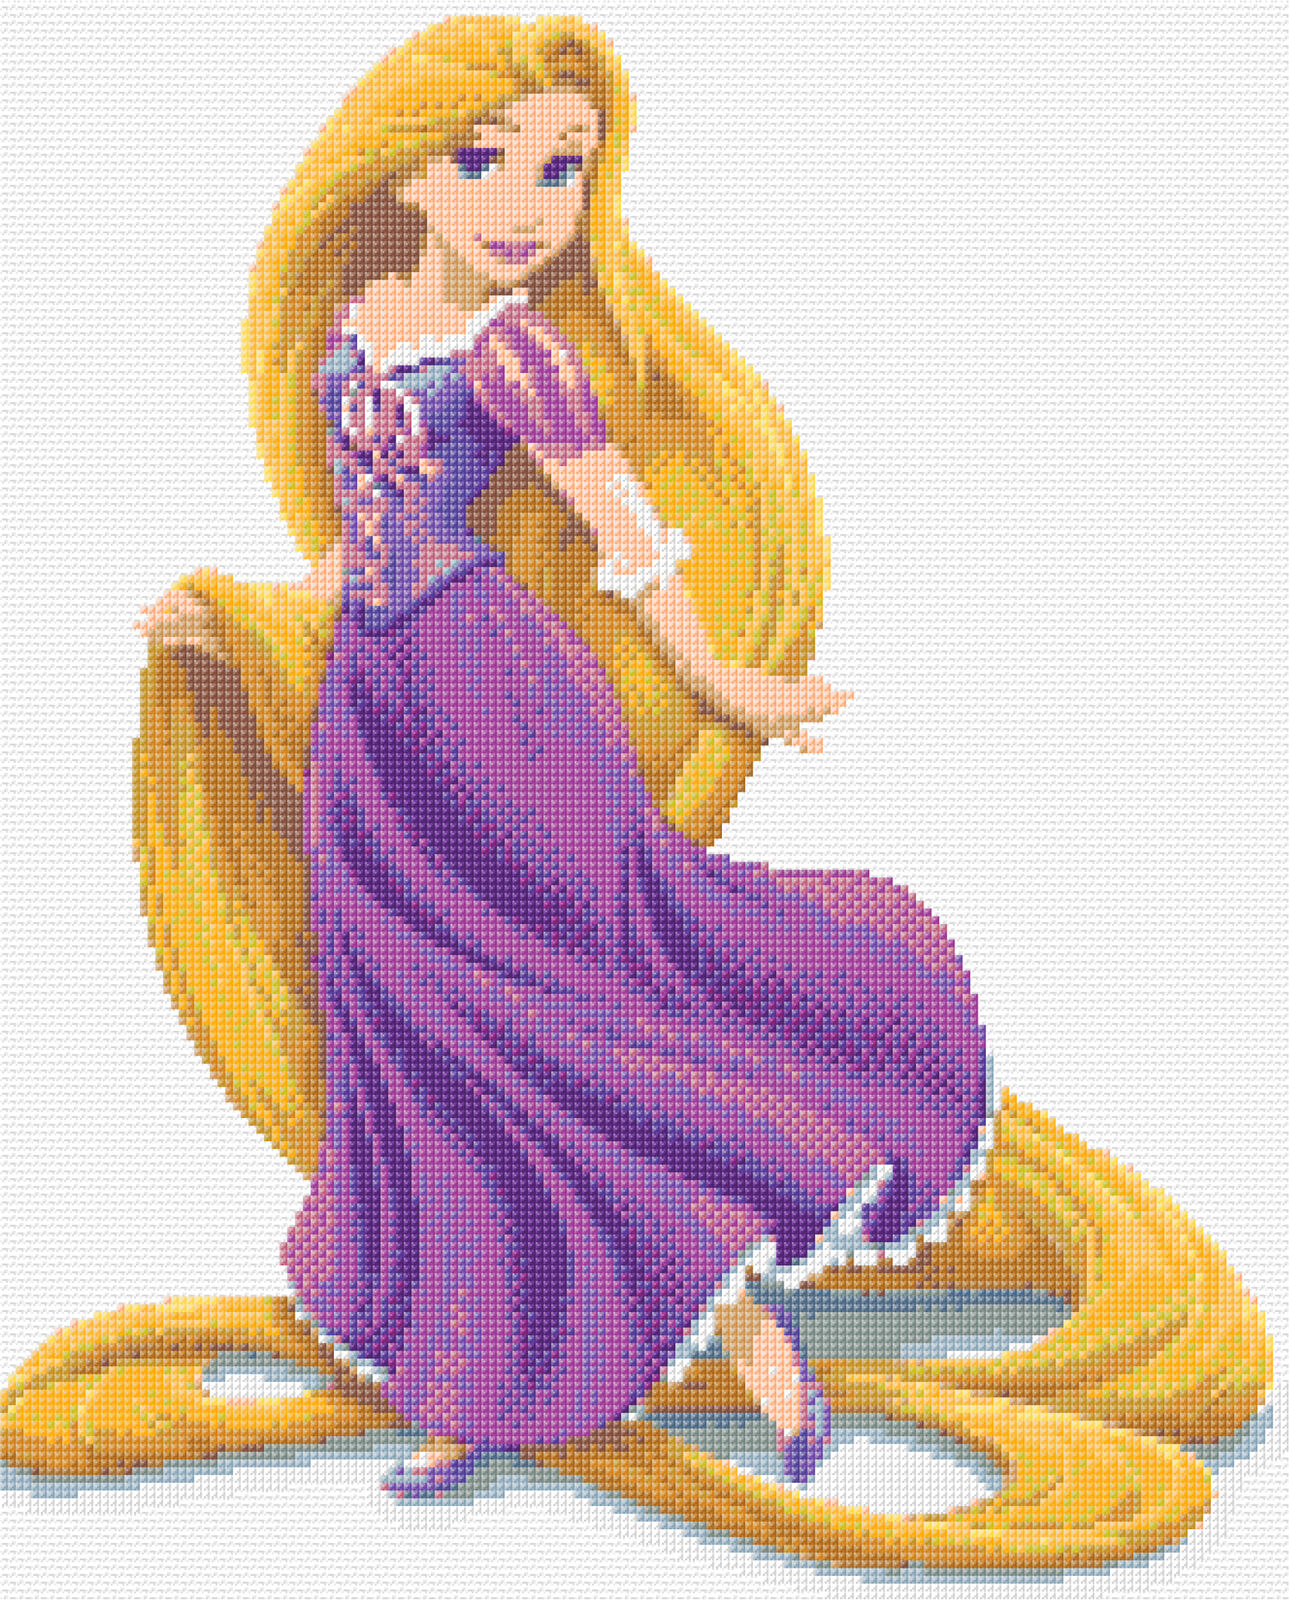 Sleeping Beauty 3 Counted Cross Stitch Kit Disney Film character